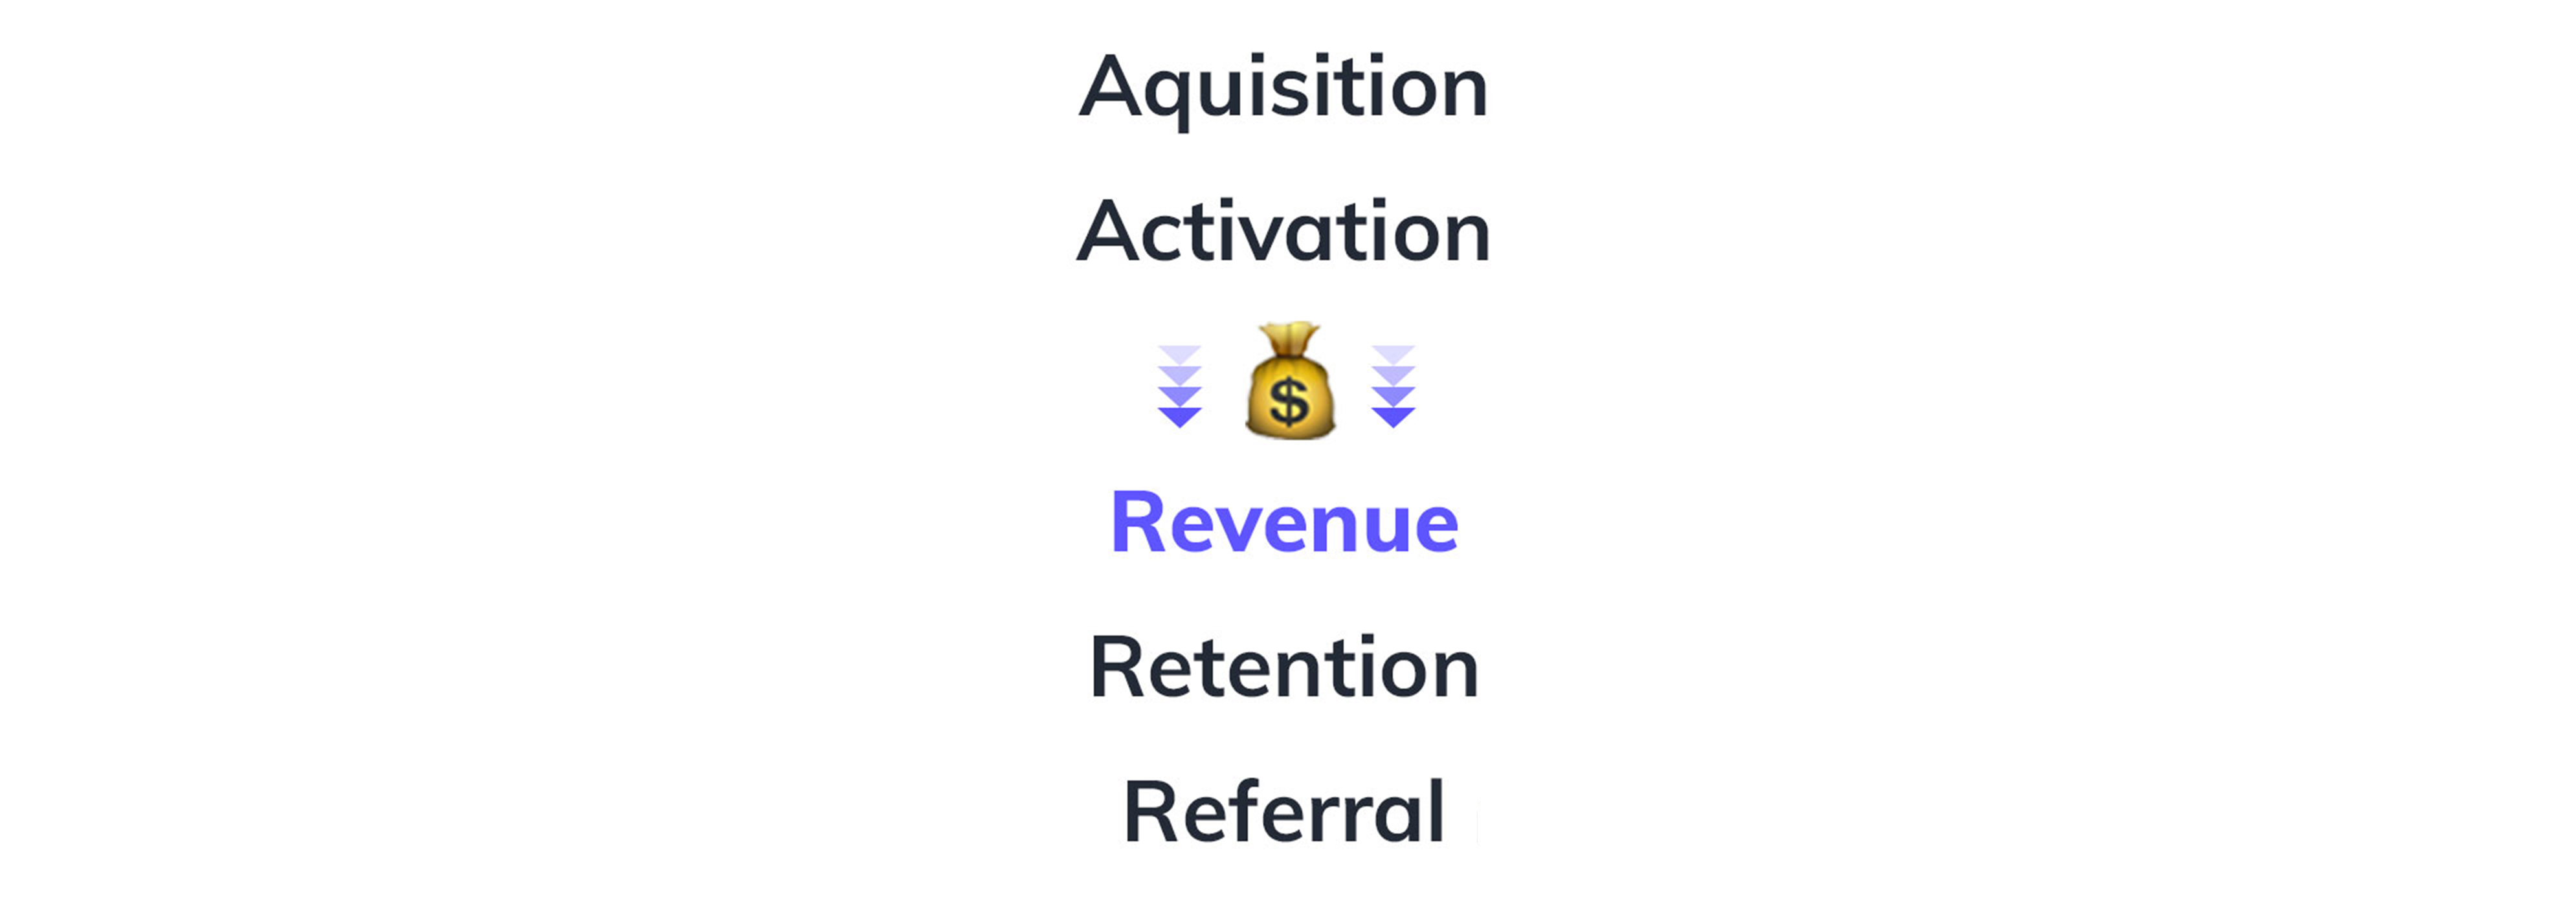 This is an image showing the list of pirate metrics rearranged to read acquisition activation revenue retention referral. There is a money bag emoji pointing toward revenue